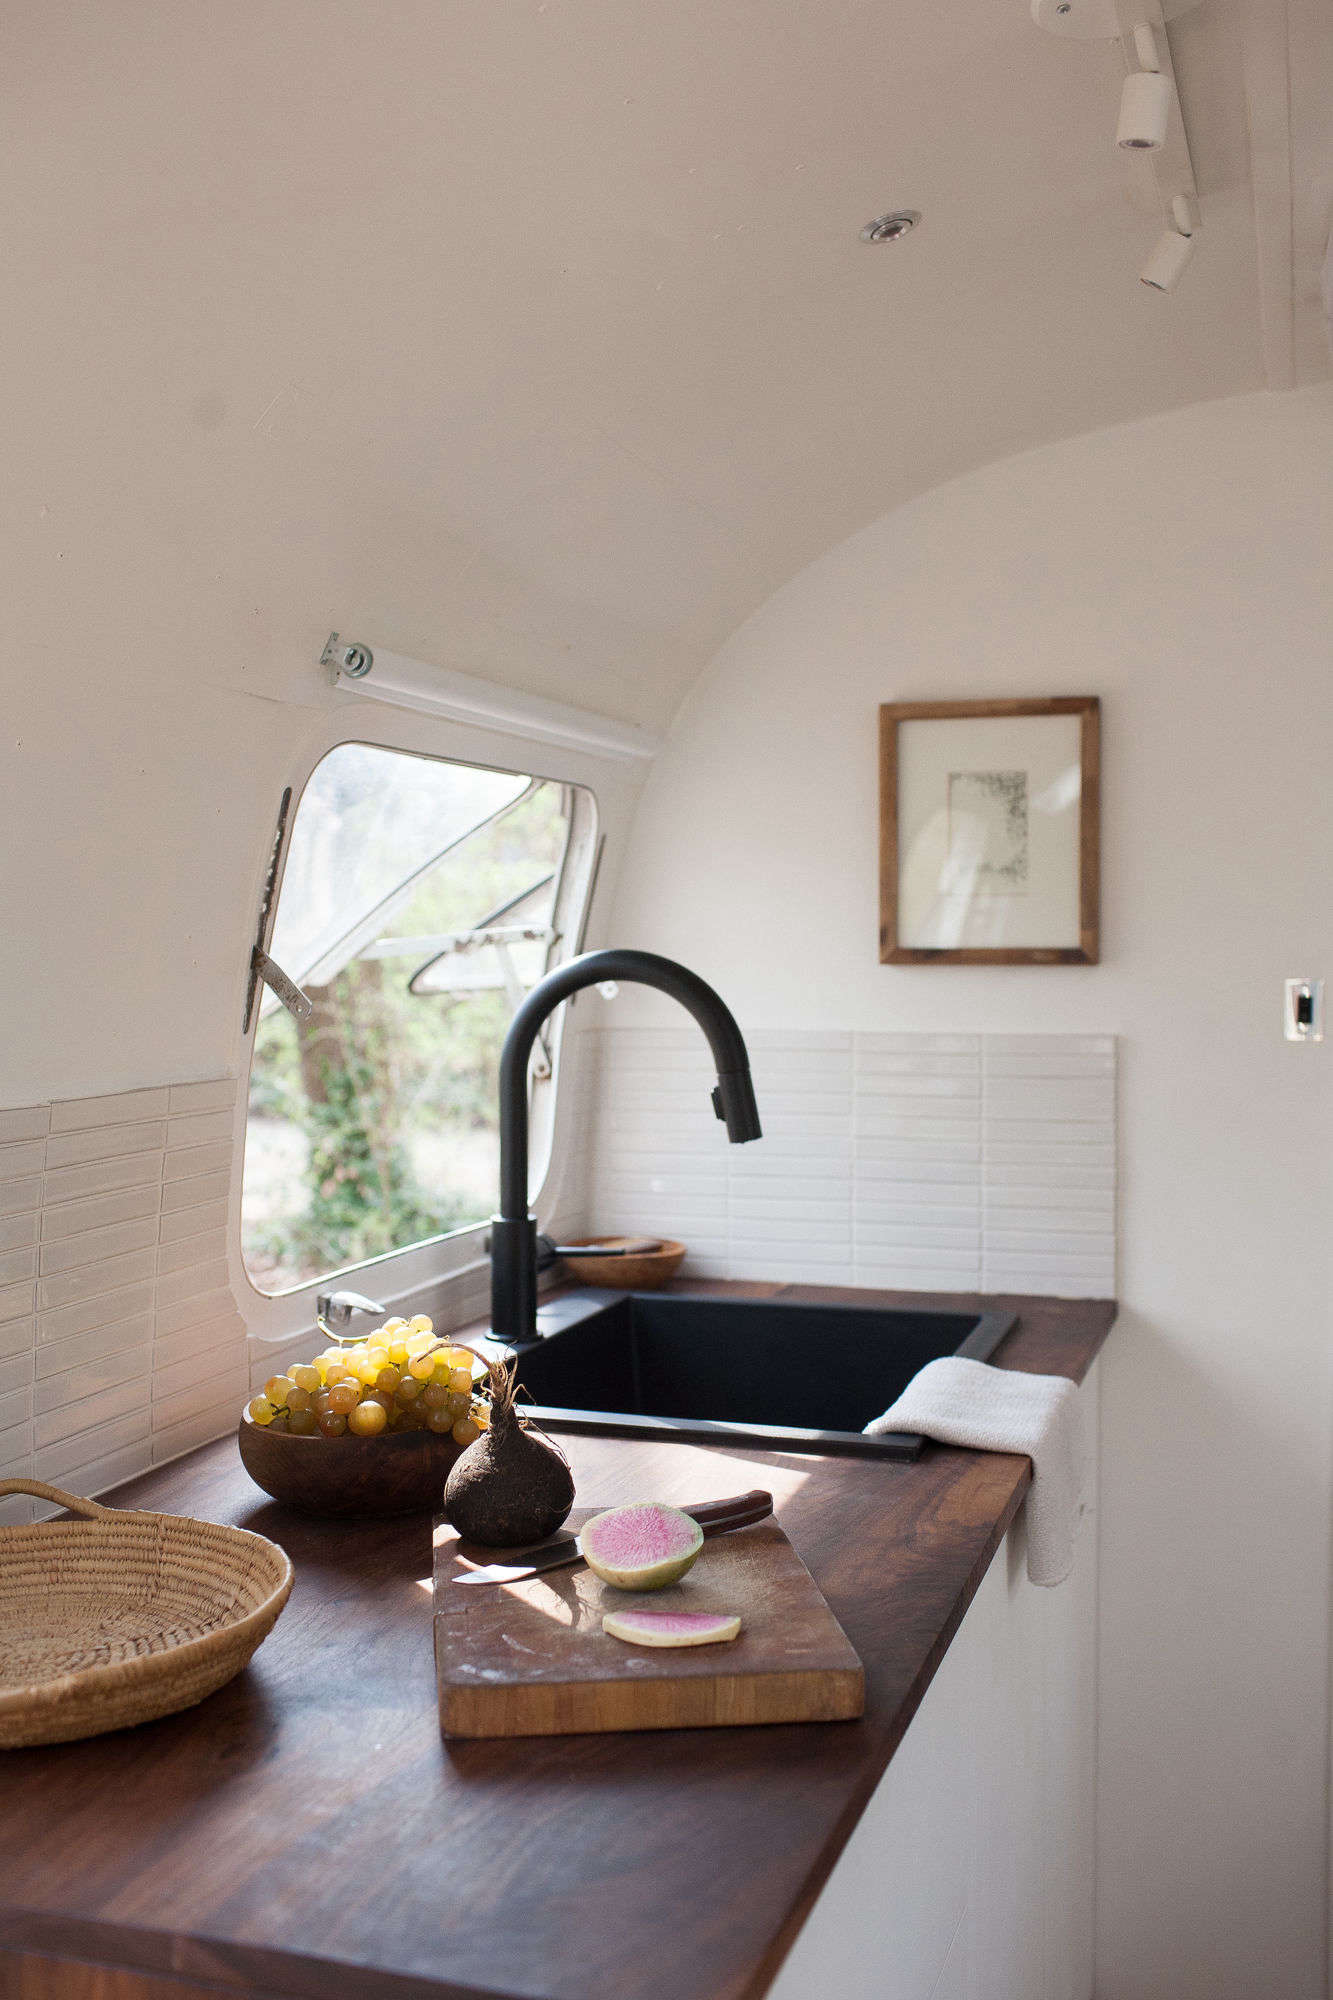 Kate And Ellen Selected A Single Bowl Granite Composite Sink In Black By Alfi 550